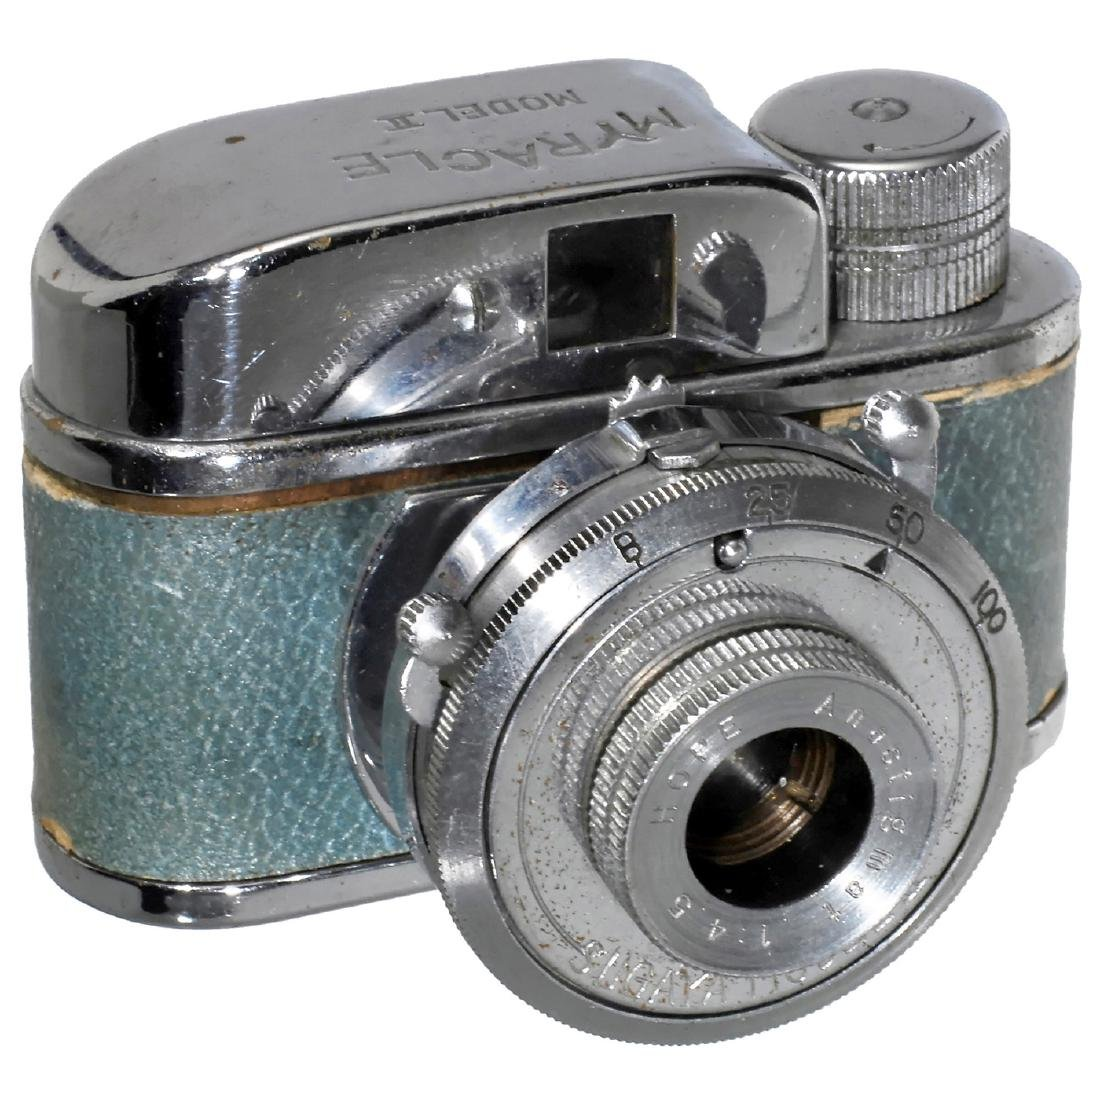 Myracle Model II (Blue), c. 1950